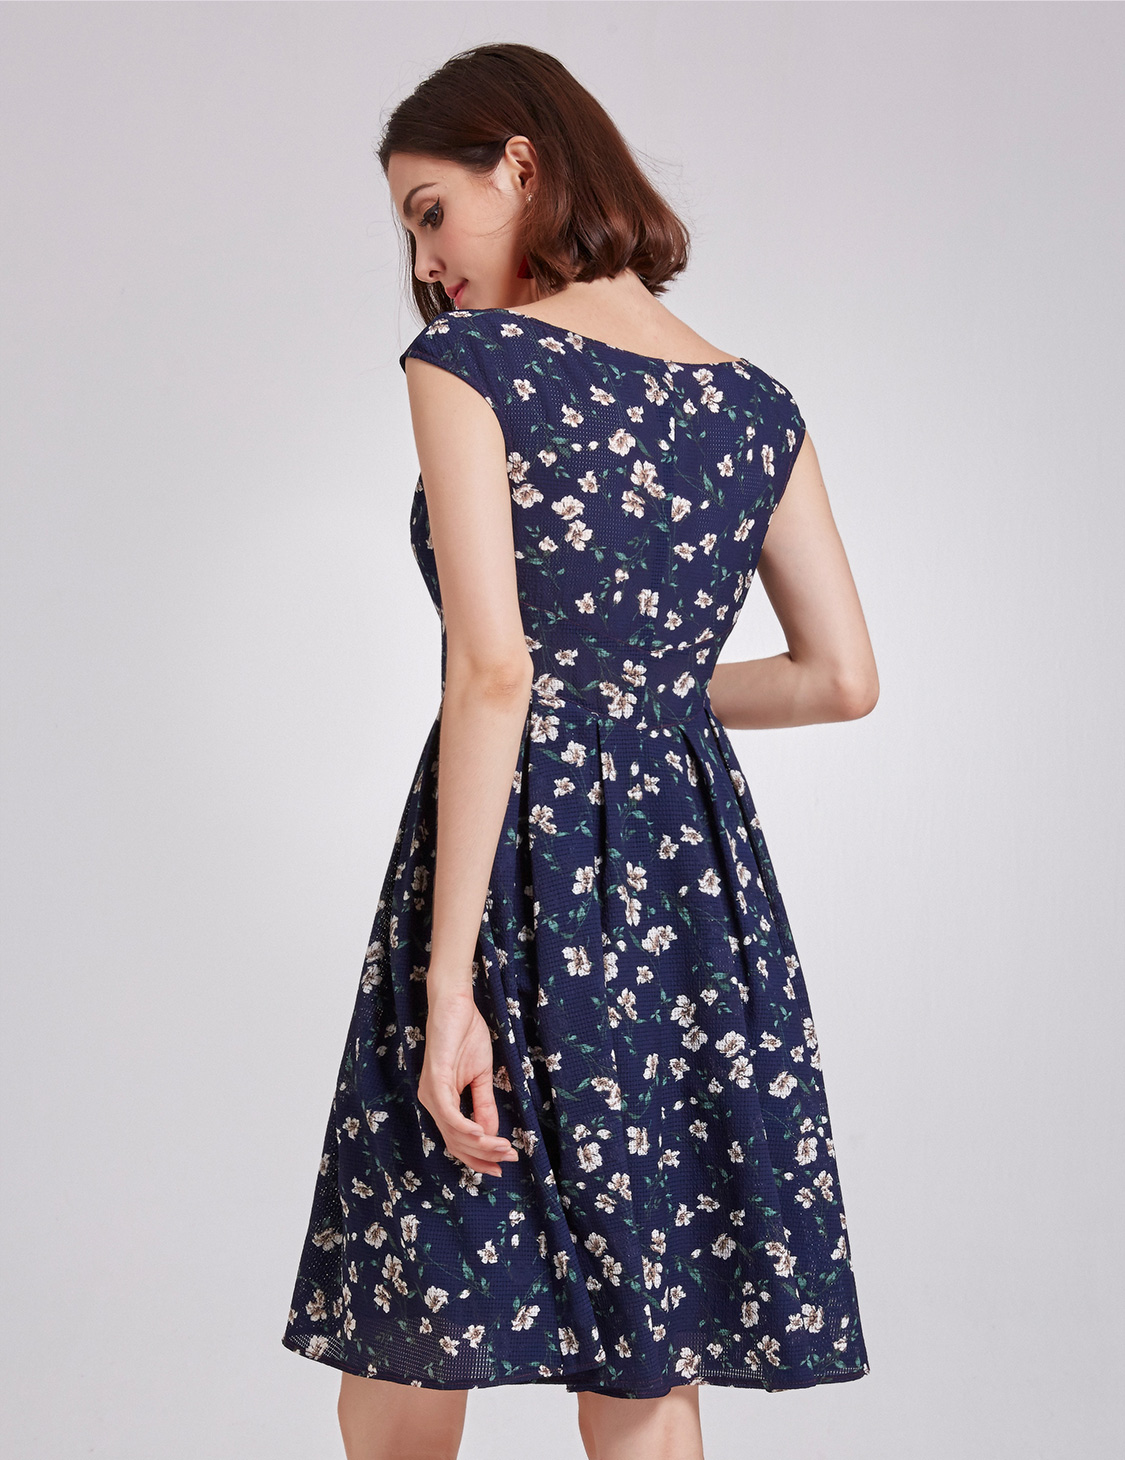 Alisa-Pan-Short-Cocktail-Dress-Floral-Print-V-Neck-Casual-Party-Dresses-05799